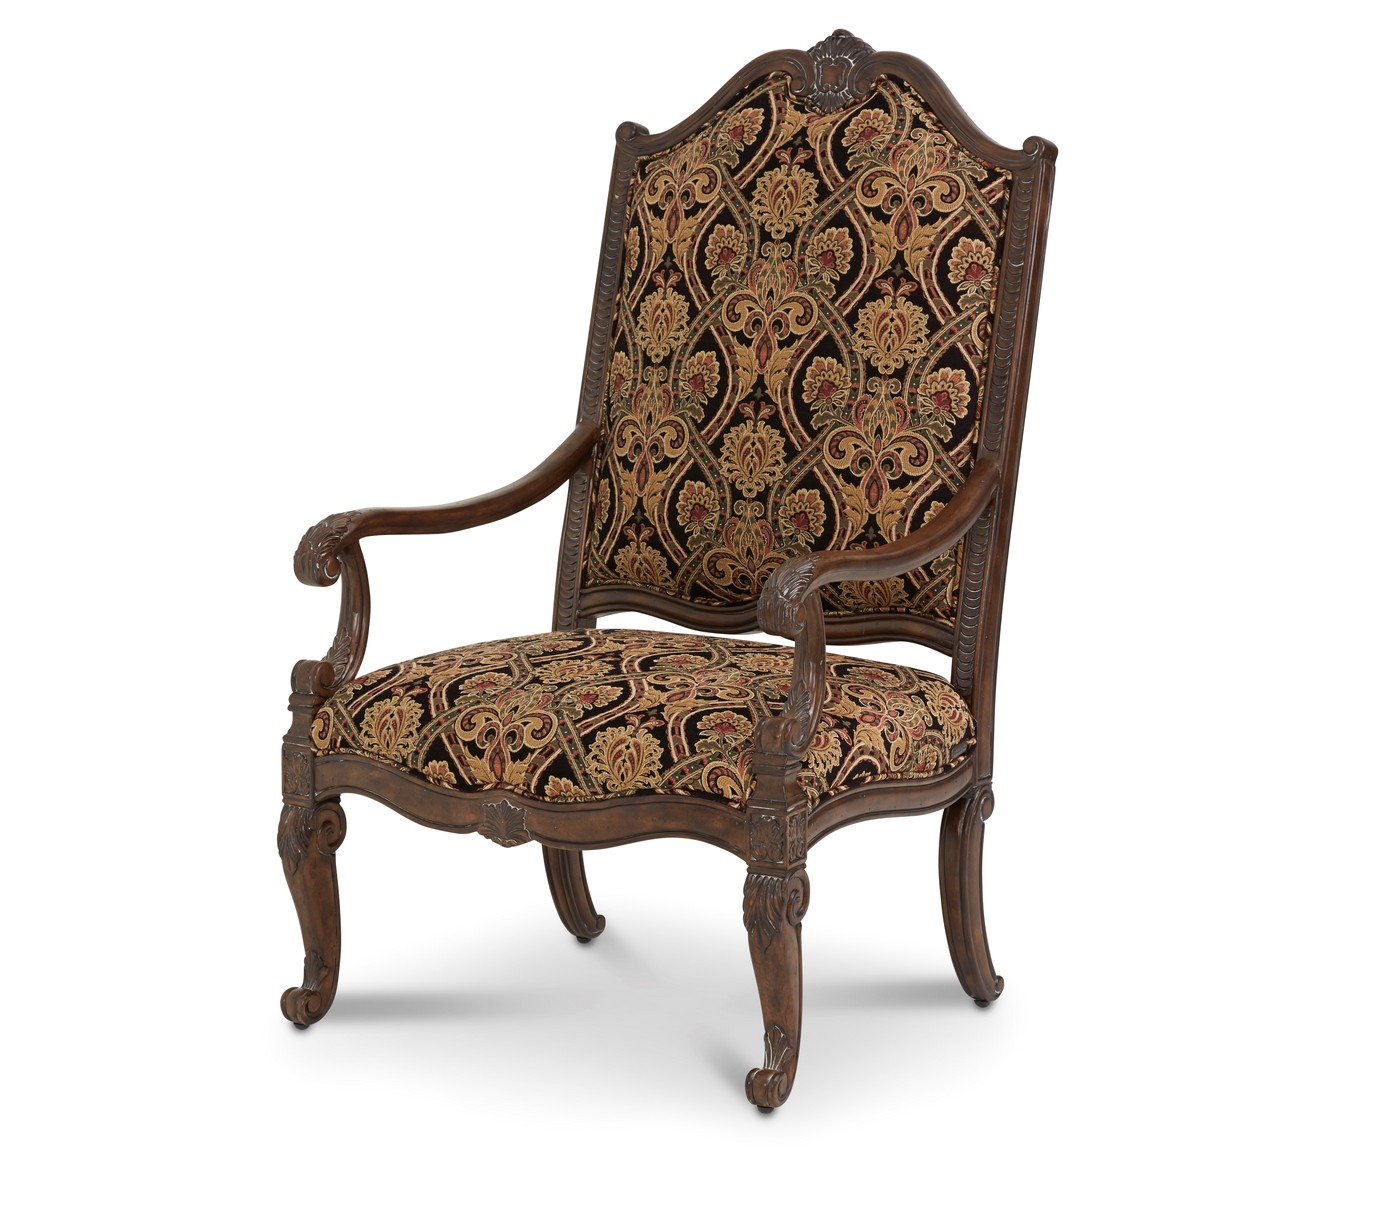 michael amini victoria palace fabric upholstery wood chair by aico. Black Bedroom Furniture Sets. Home Design Ideas